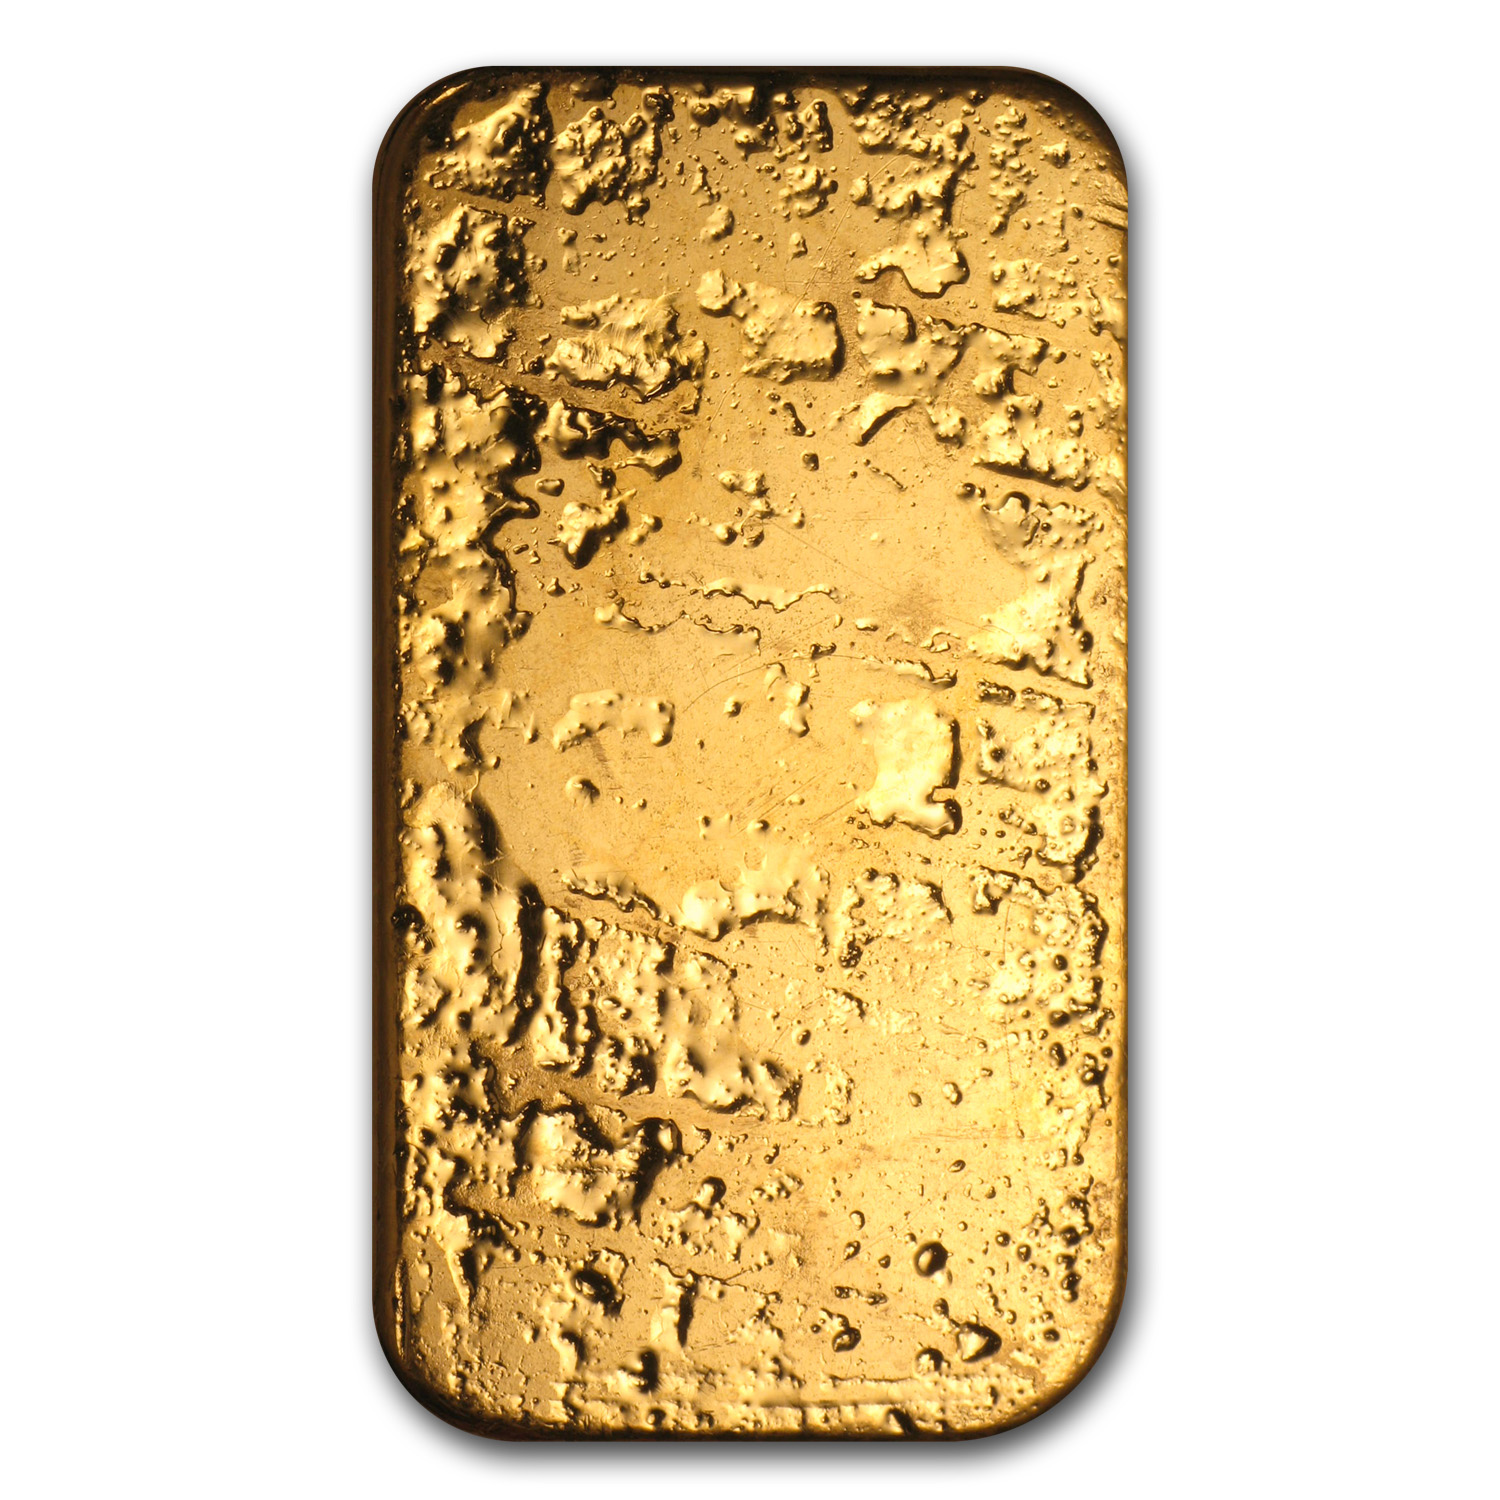 10 Tolas Gold Bars - Engelhard-Swiss Bank Corporation (3.75 oz)